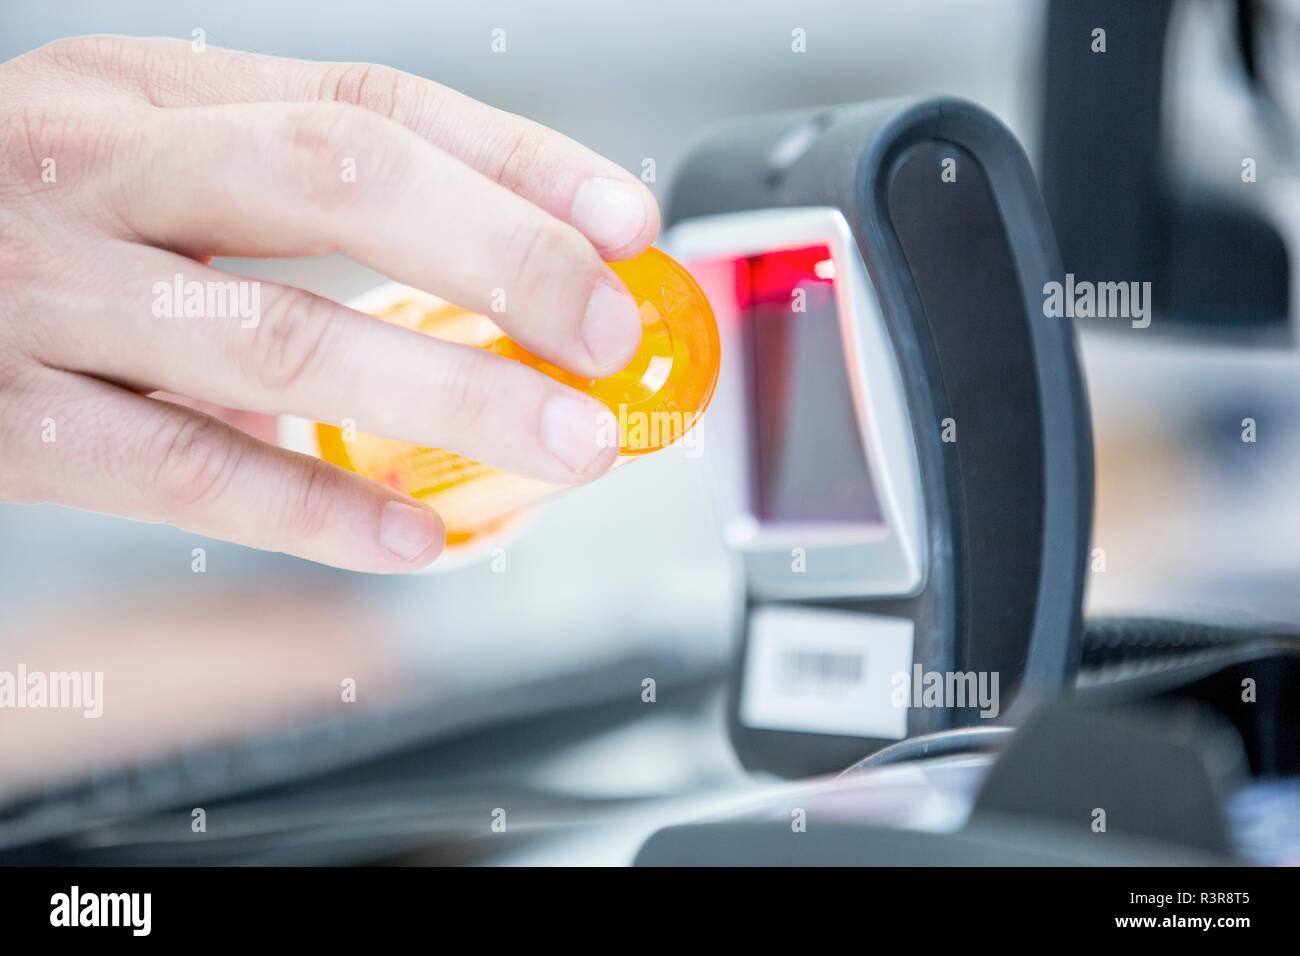 Pharmacist scanning medicine with barcode reader in pharmacy. - Stock Image